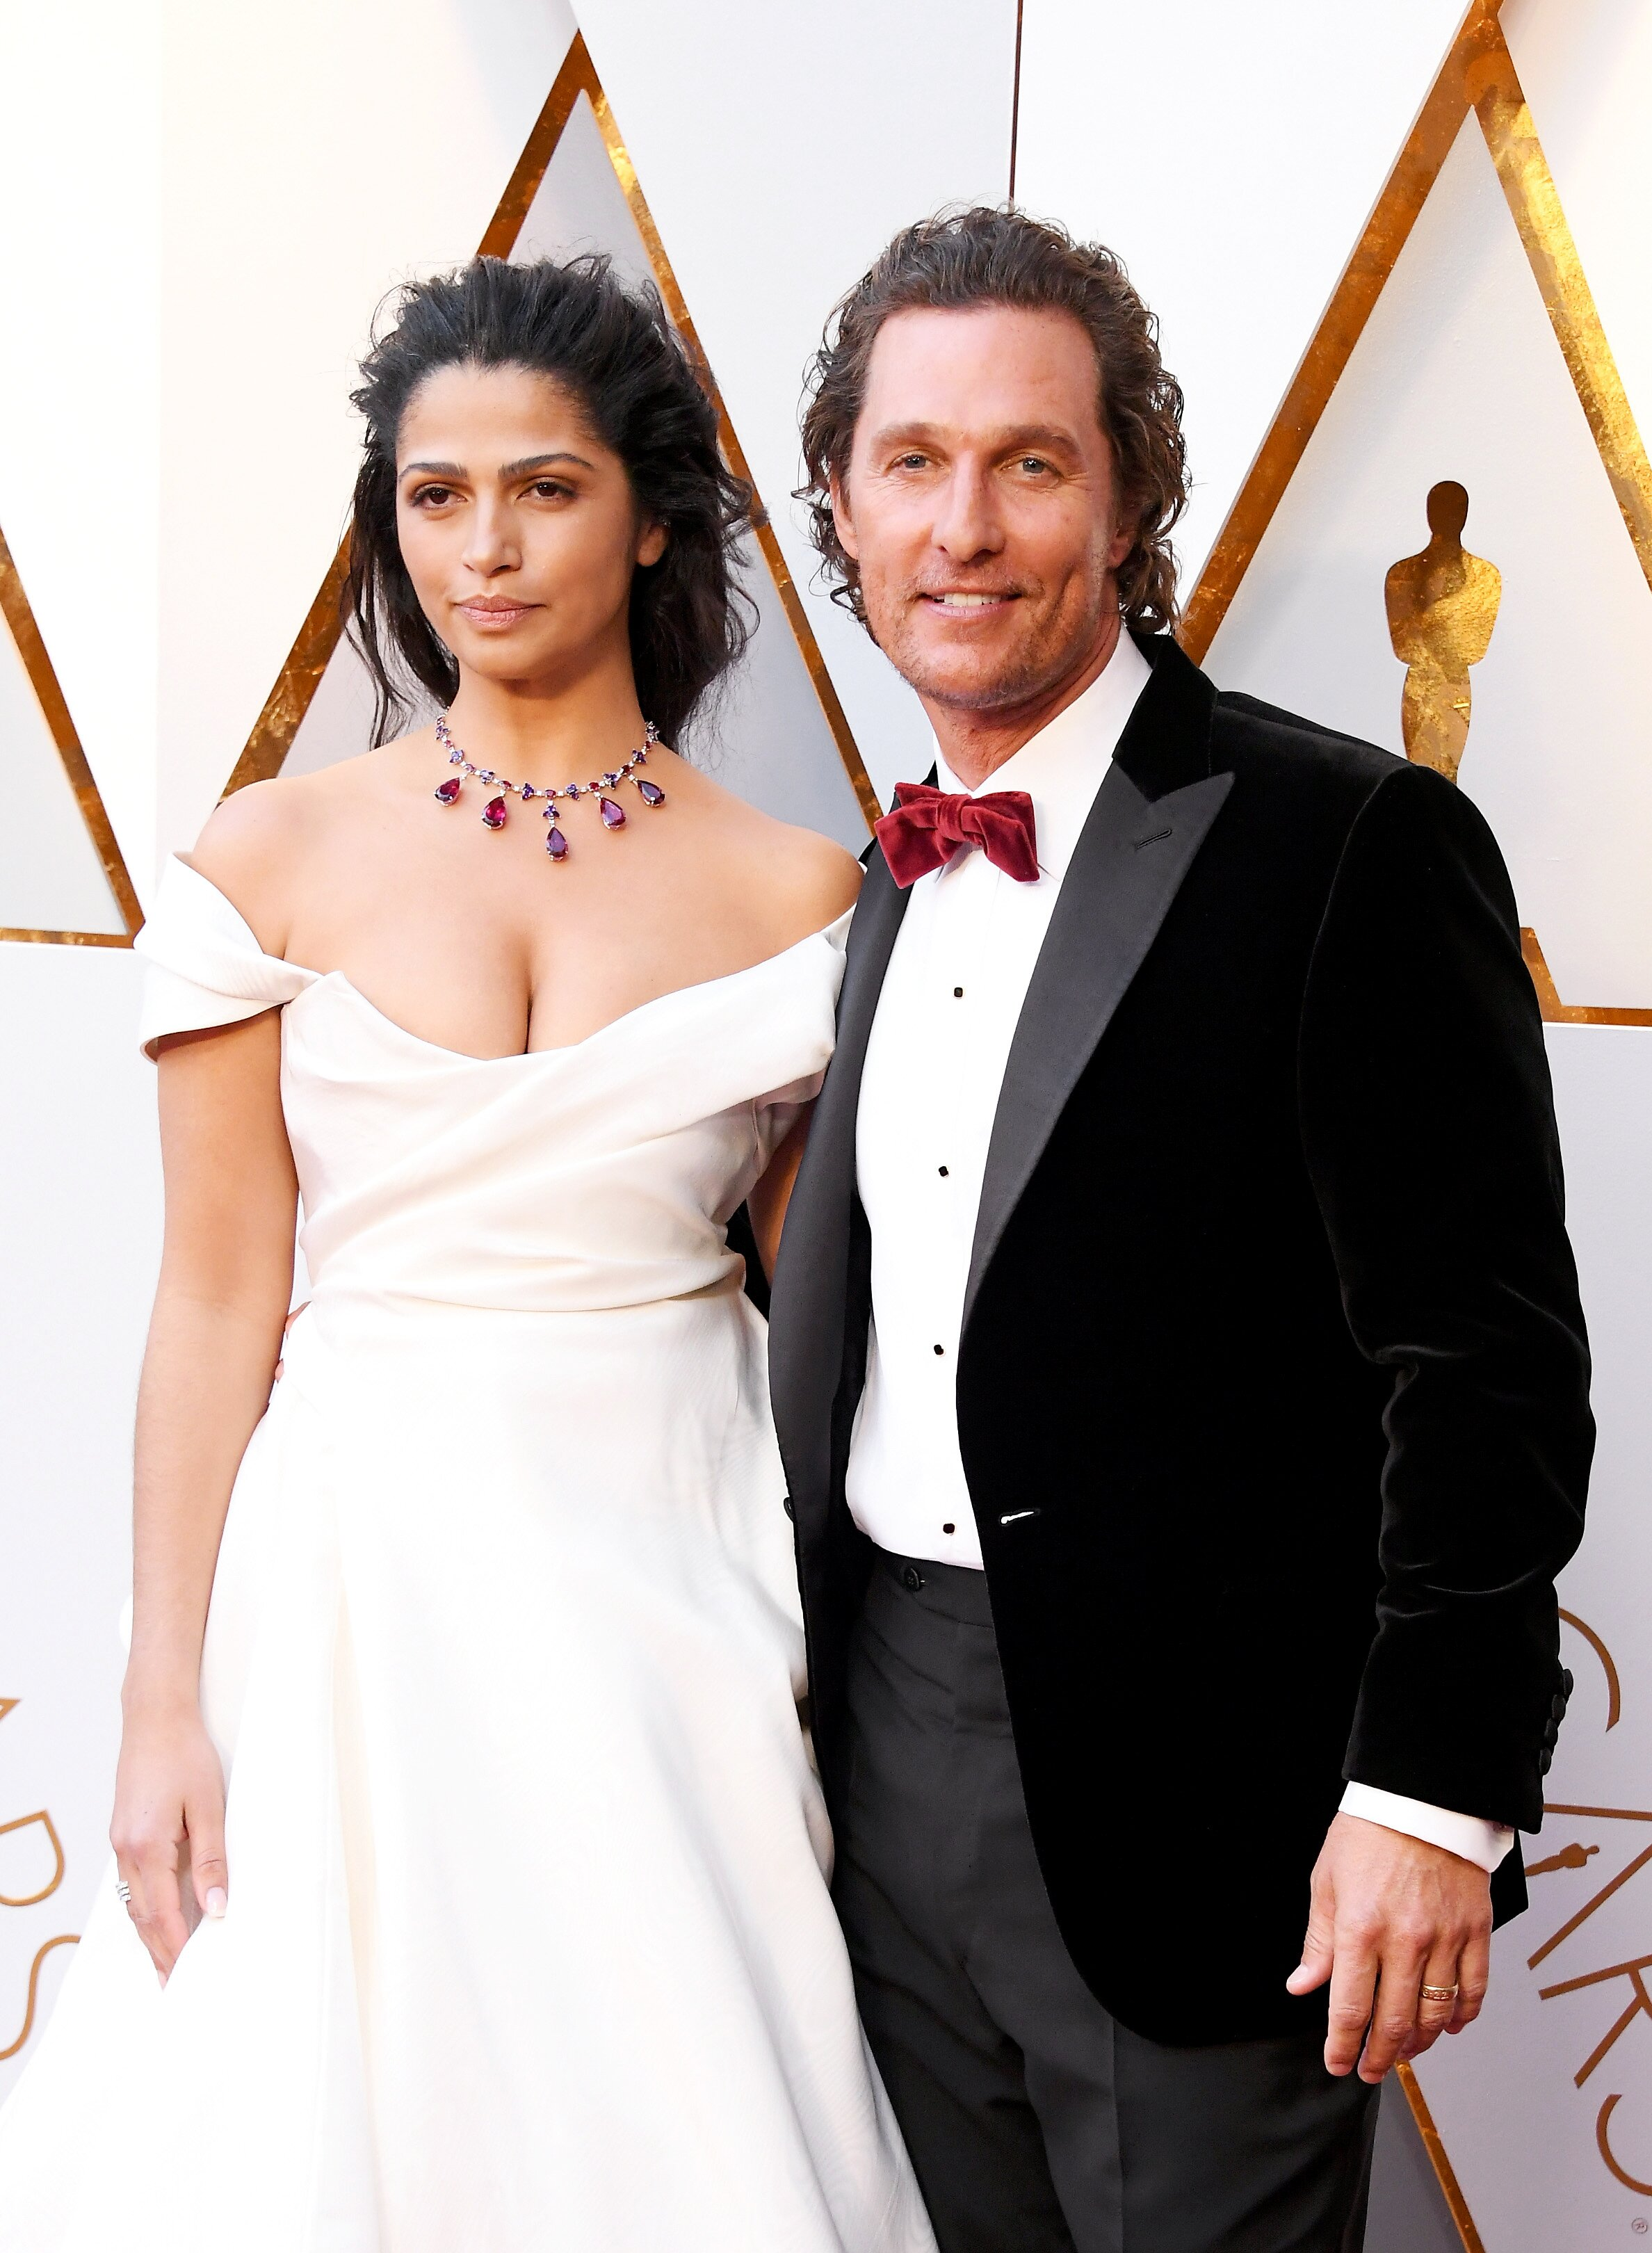 Matthew Mcconaughey Says Wife Camila Alves Came Into His Life At